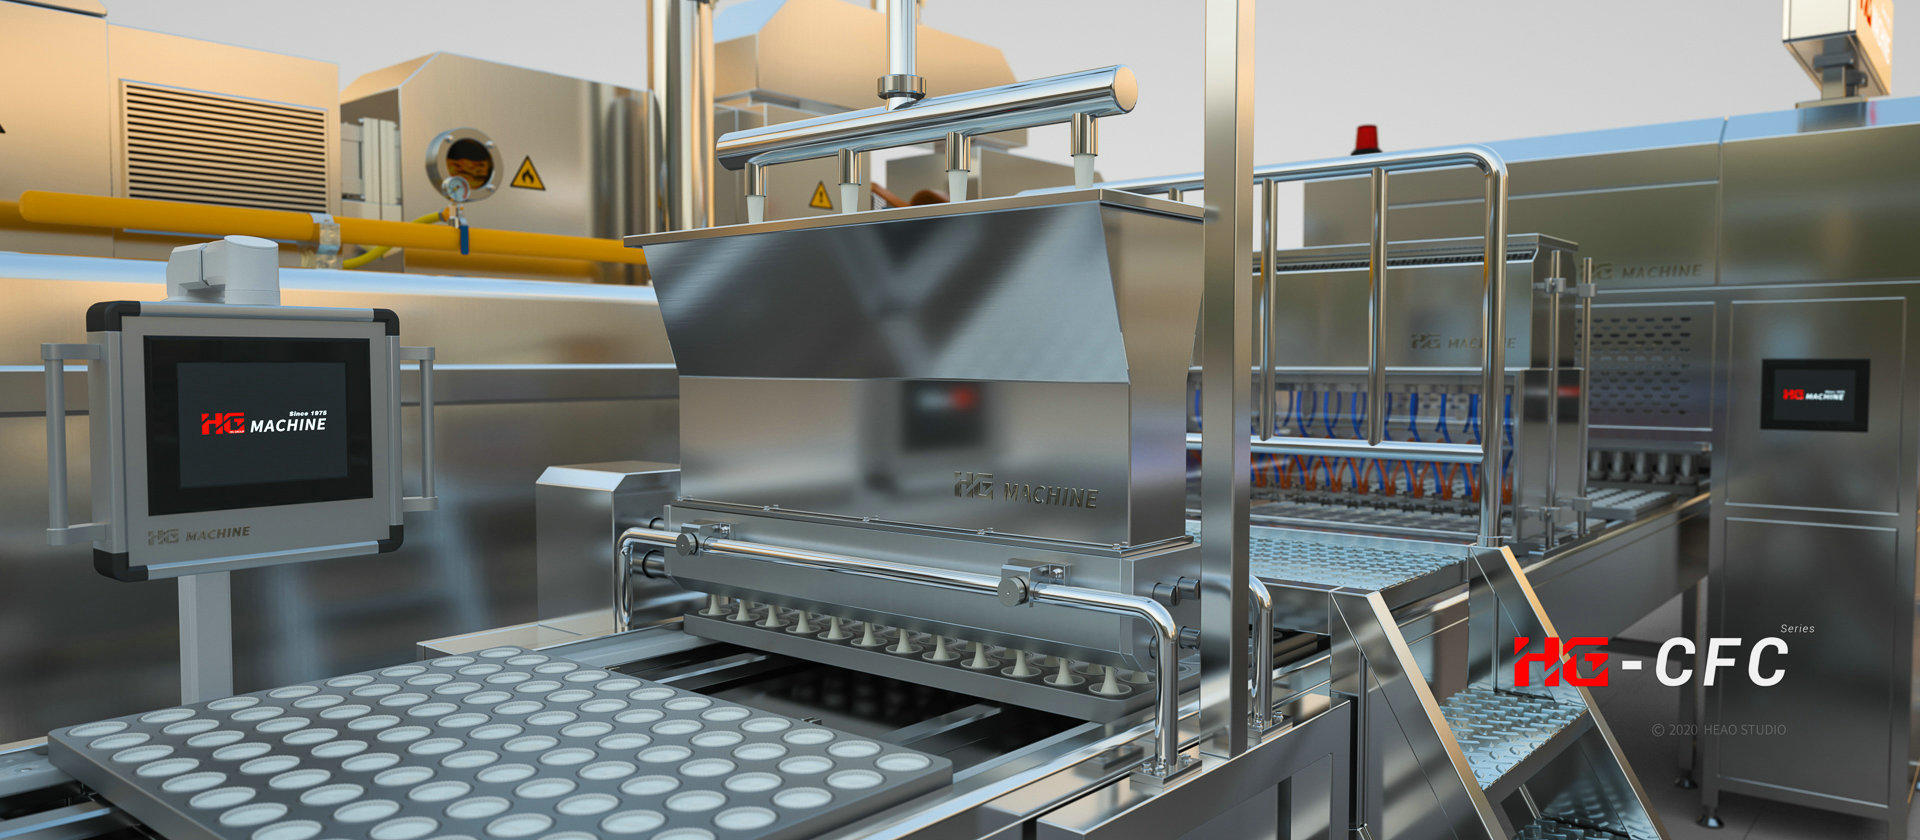 Foreign media selected five new food machinery products